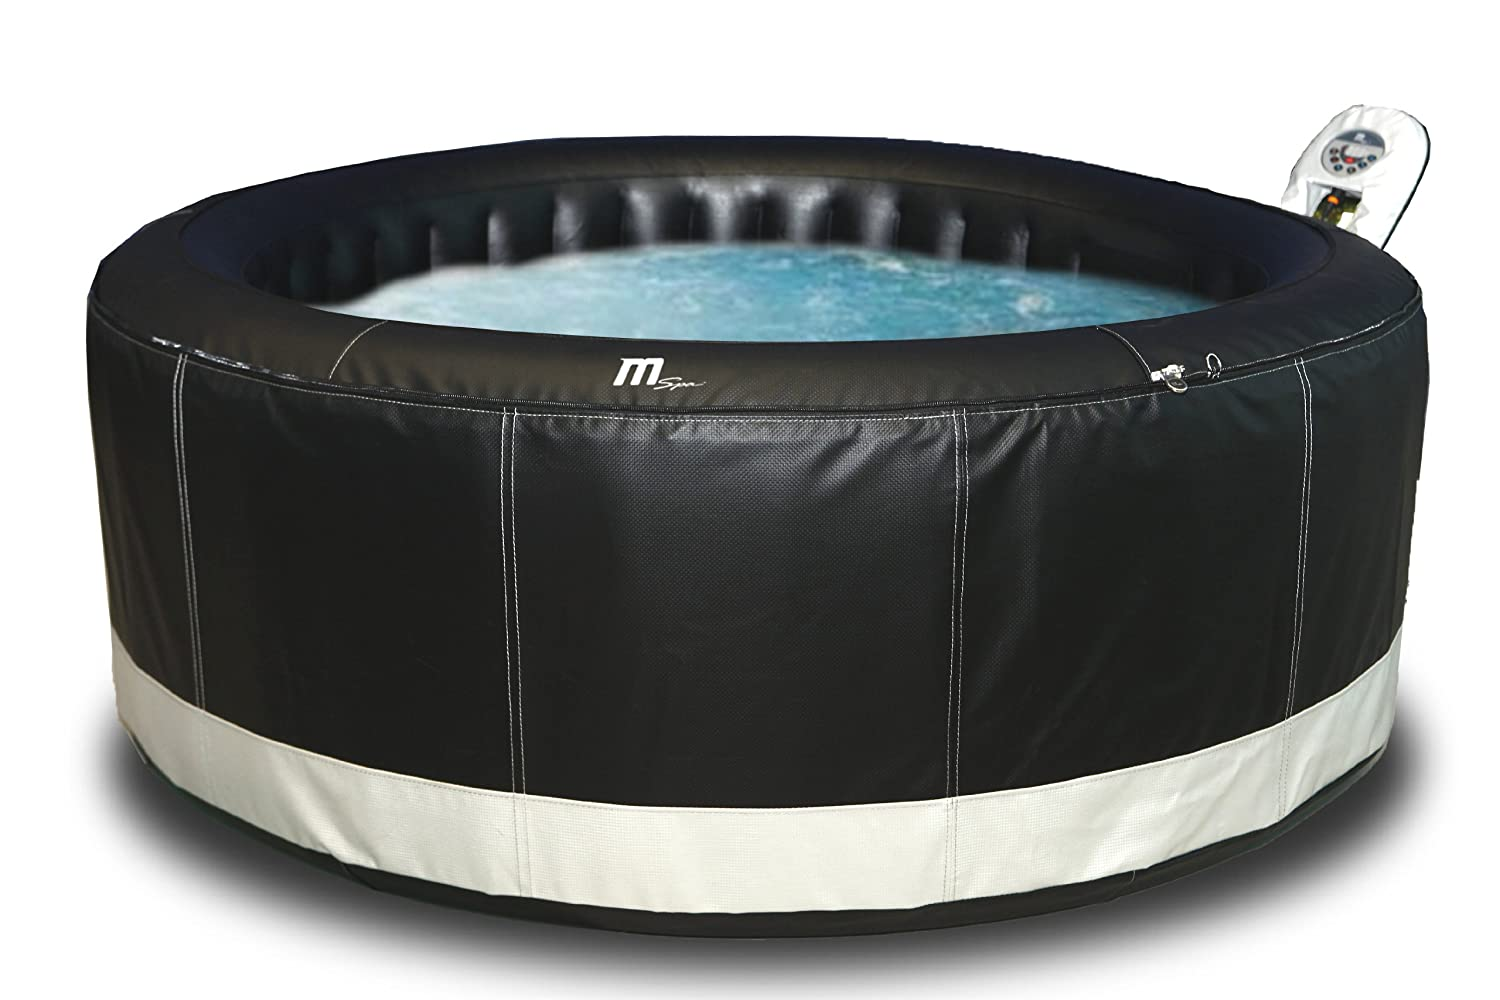 Top 10 Best Portable Hot Tubs (2020 Reviews & Buying Guide) 8